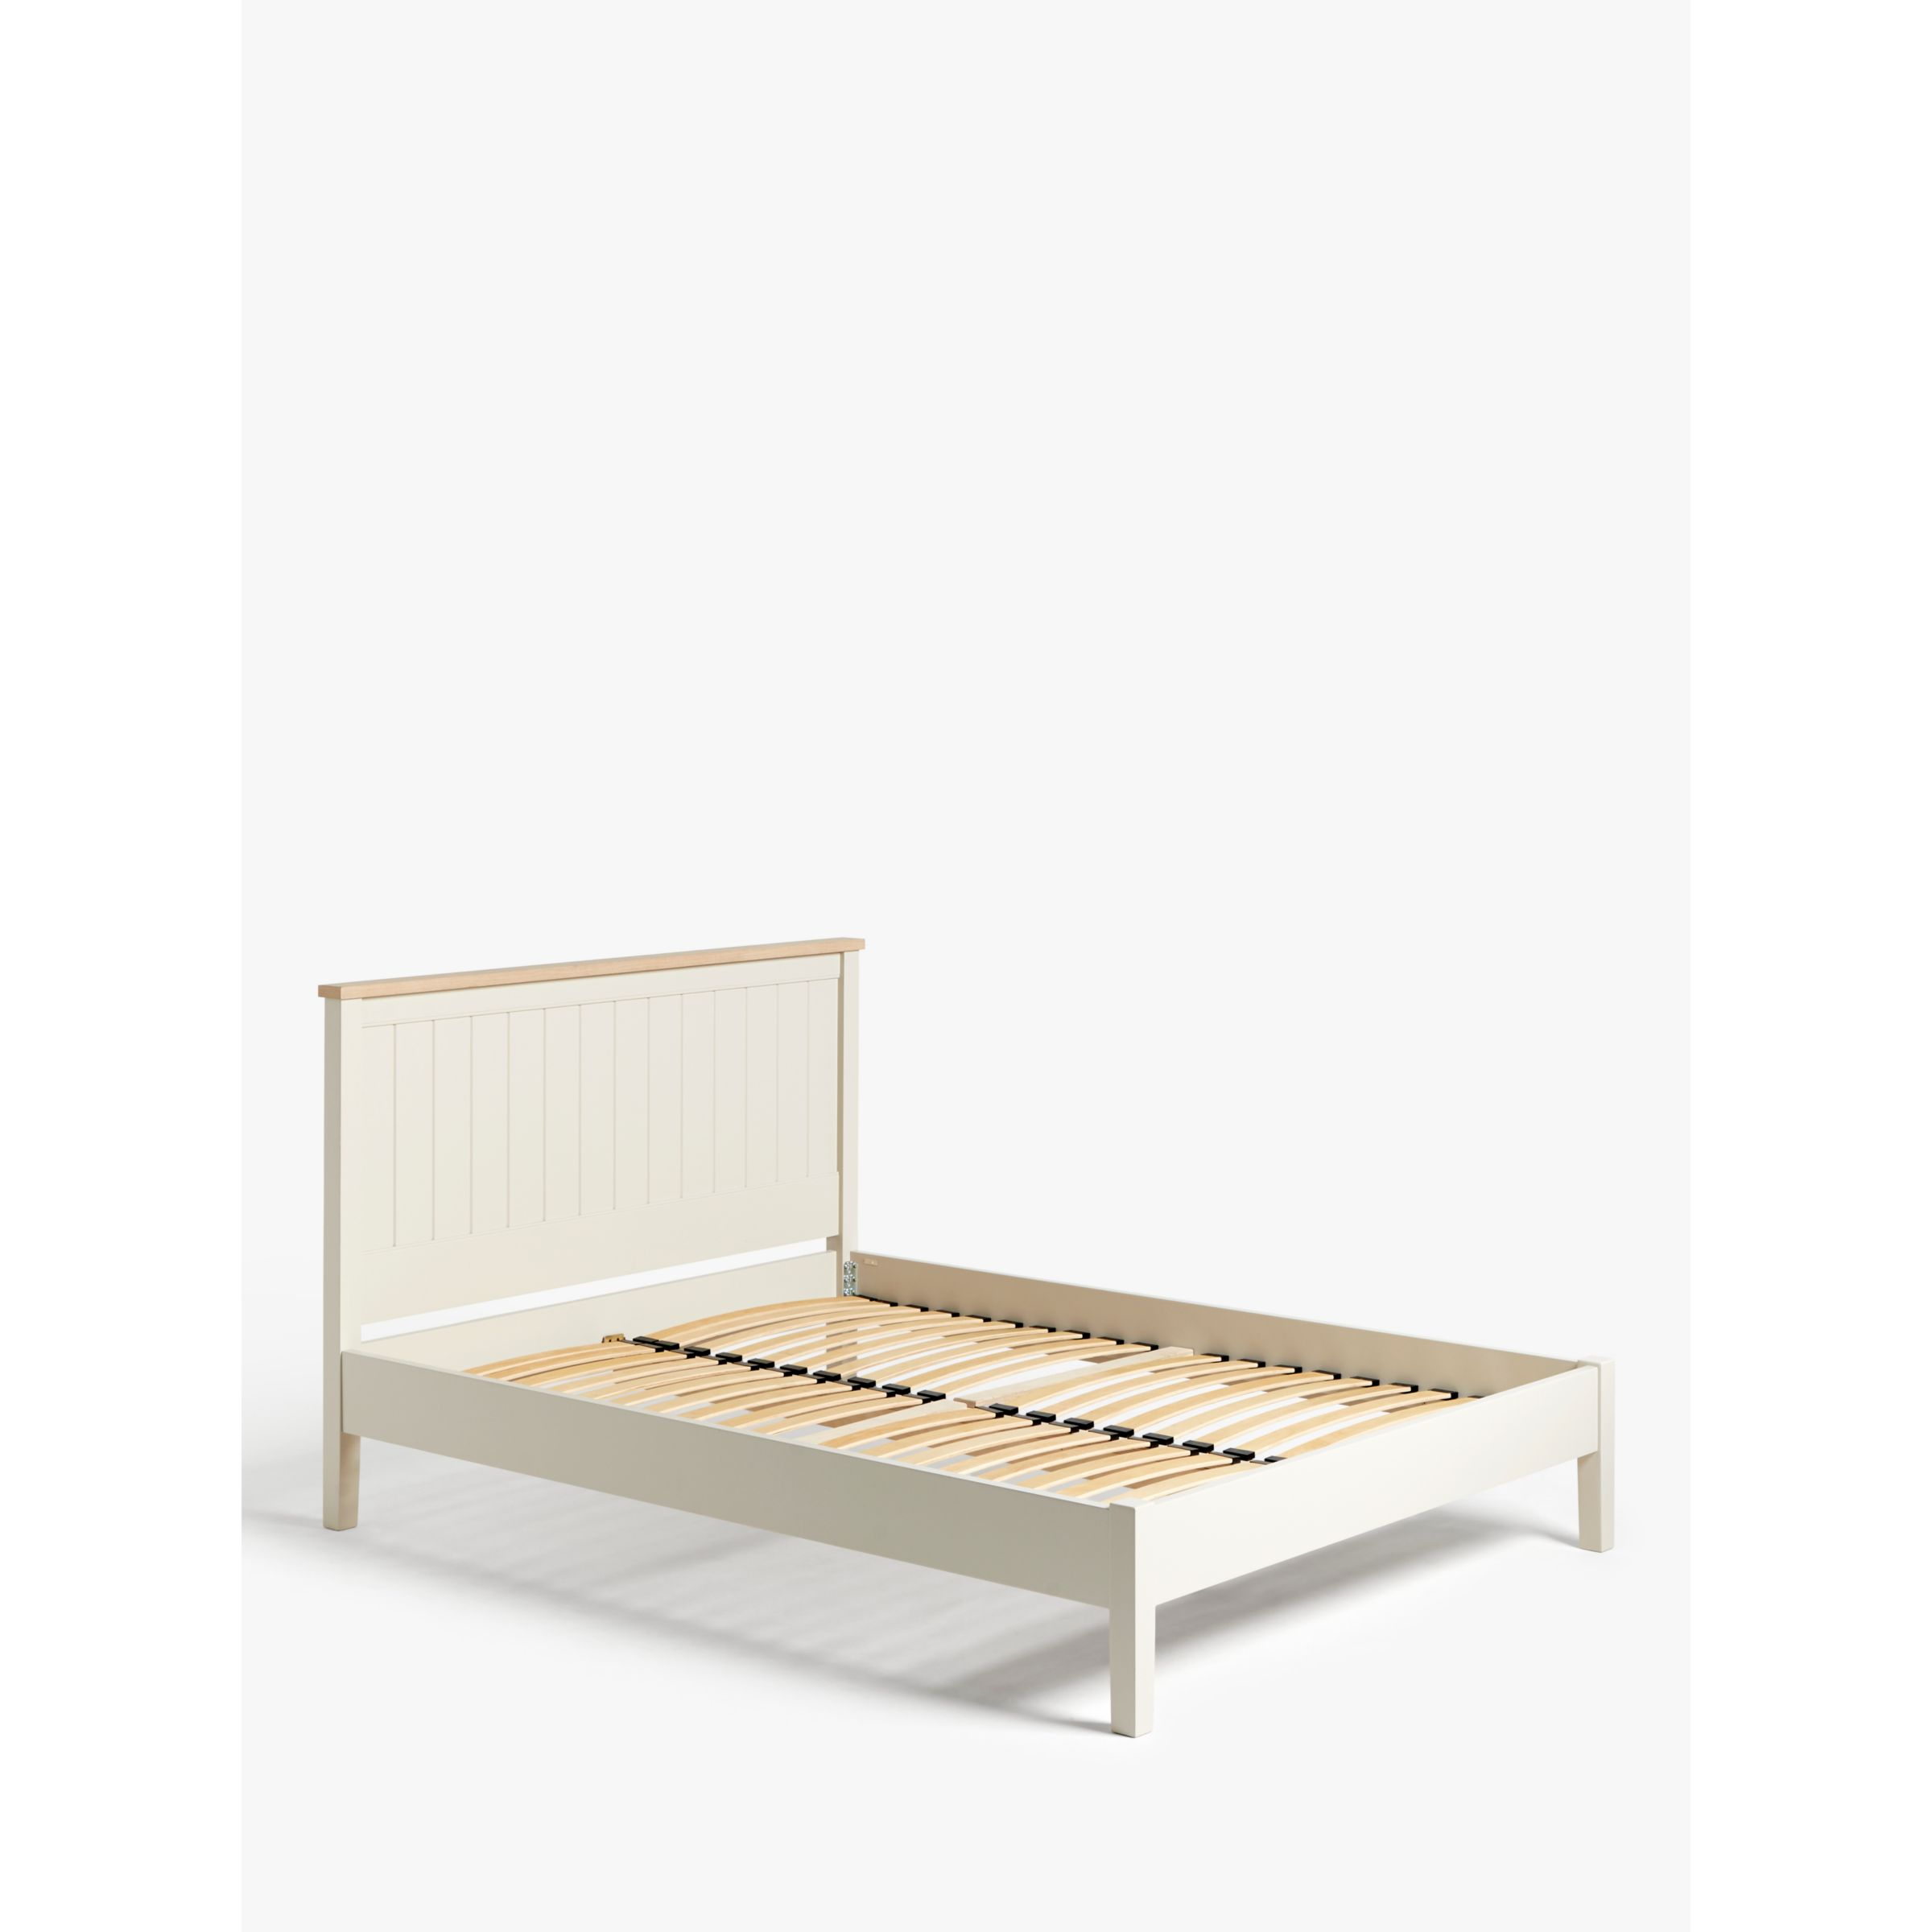 John Lewis & Partners St Ives Bed Frame, FSC-Certified (Oak, Birch, Oak Veneer, MDF), King Size